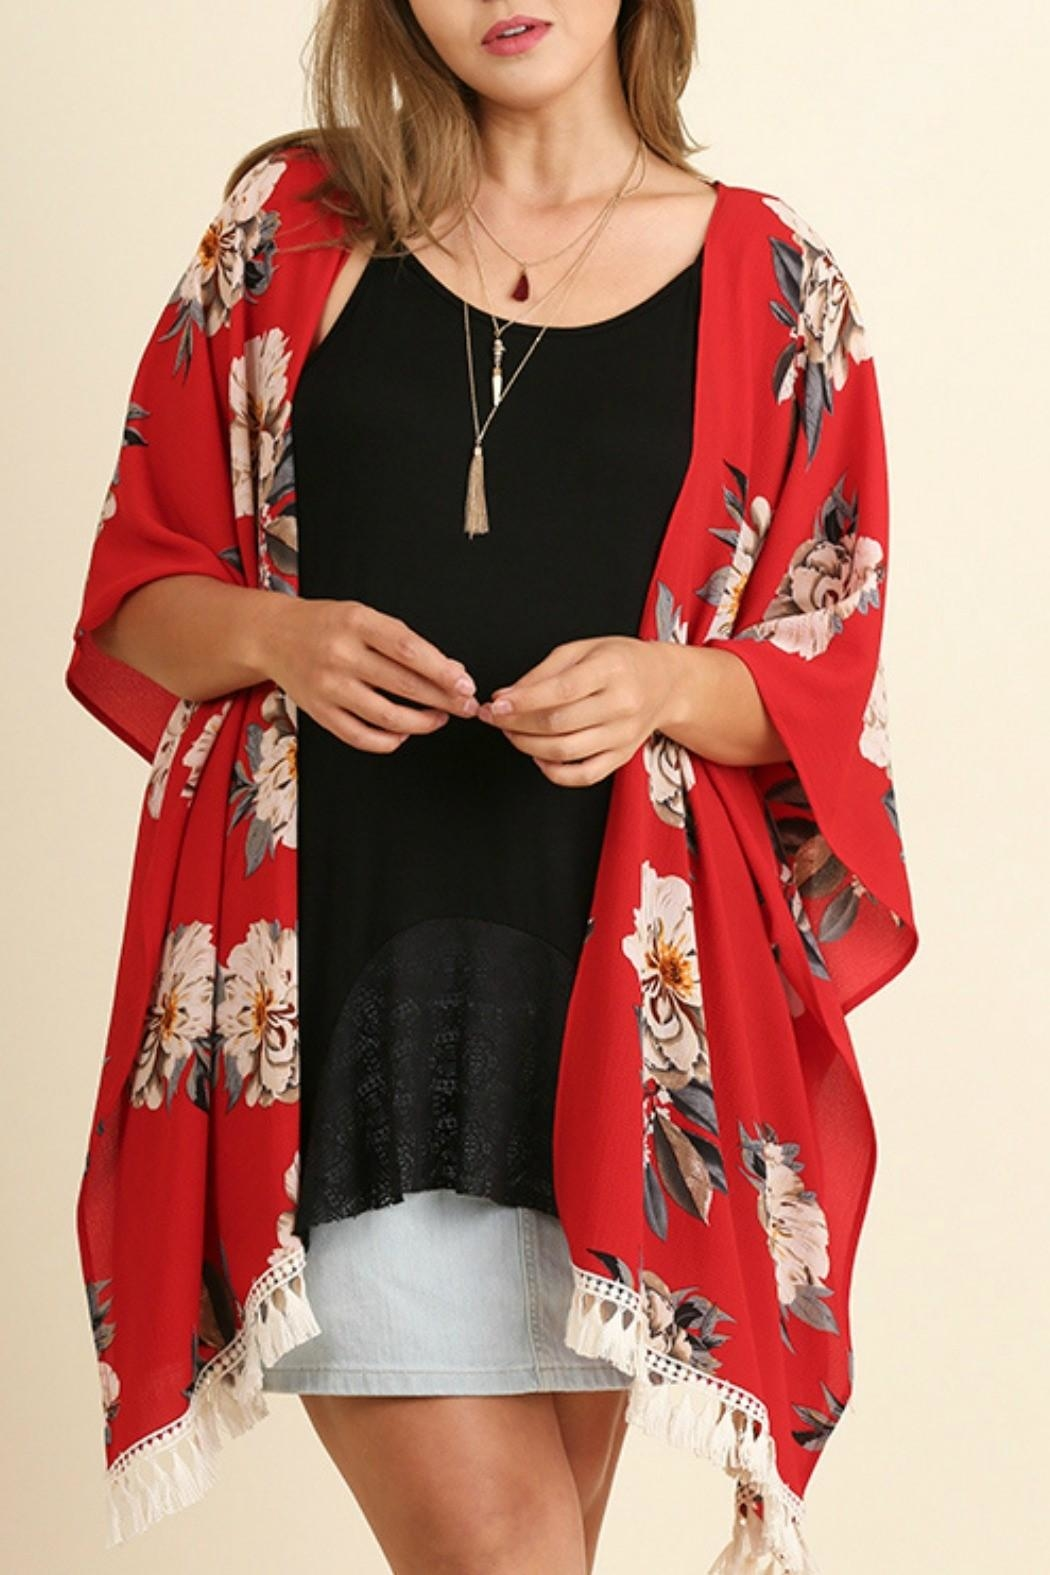 Umgee USA Red Floral Kimono from Montana by Foxwood